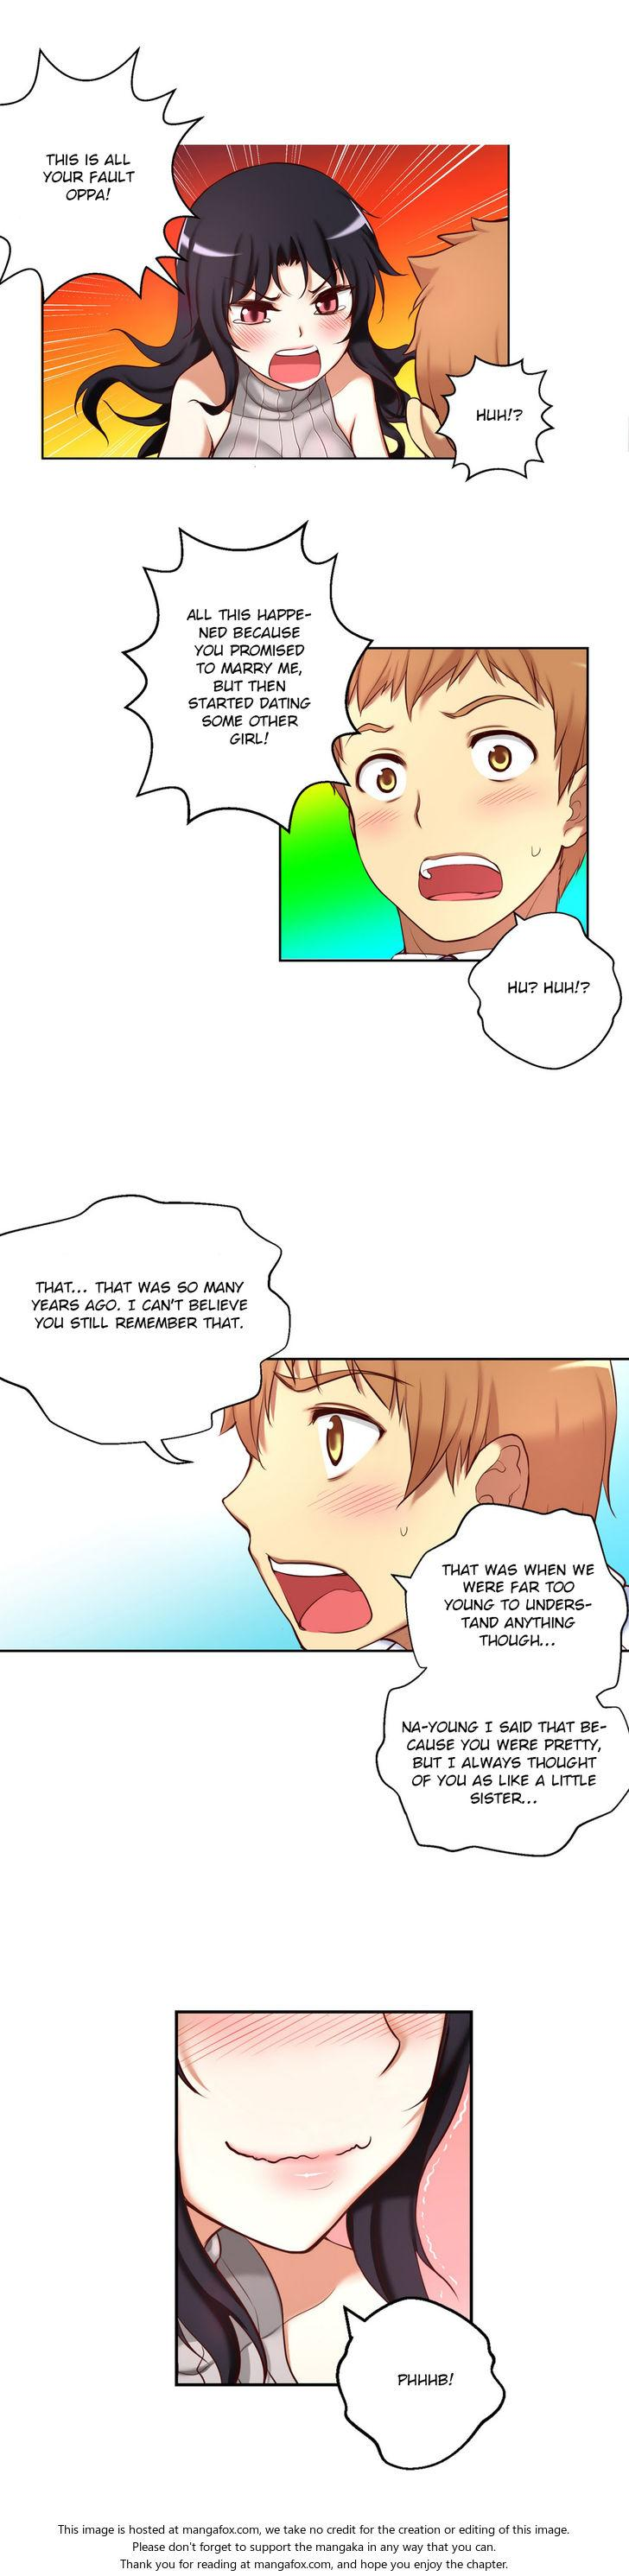 [Donggul Gom] She is Young (English) Part 1/2 484